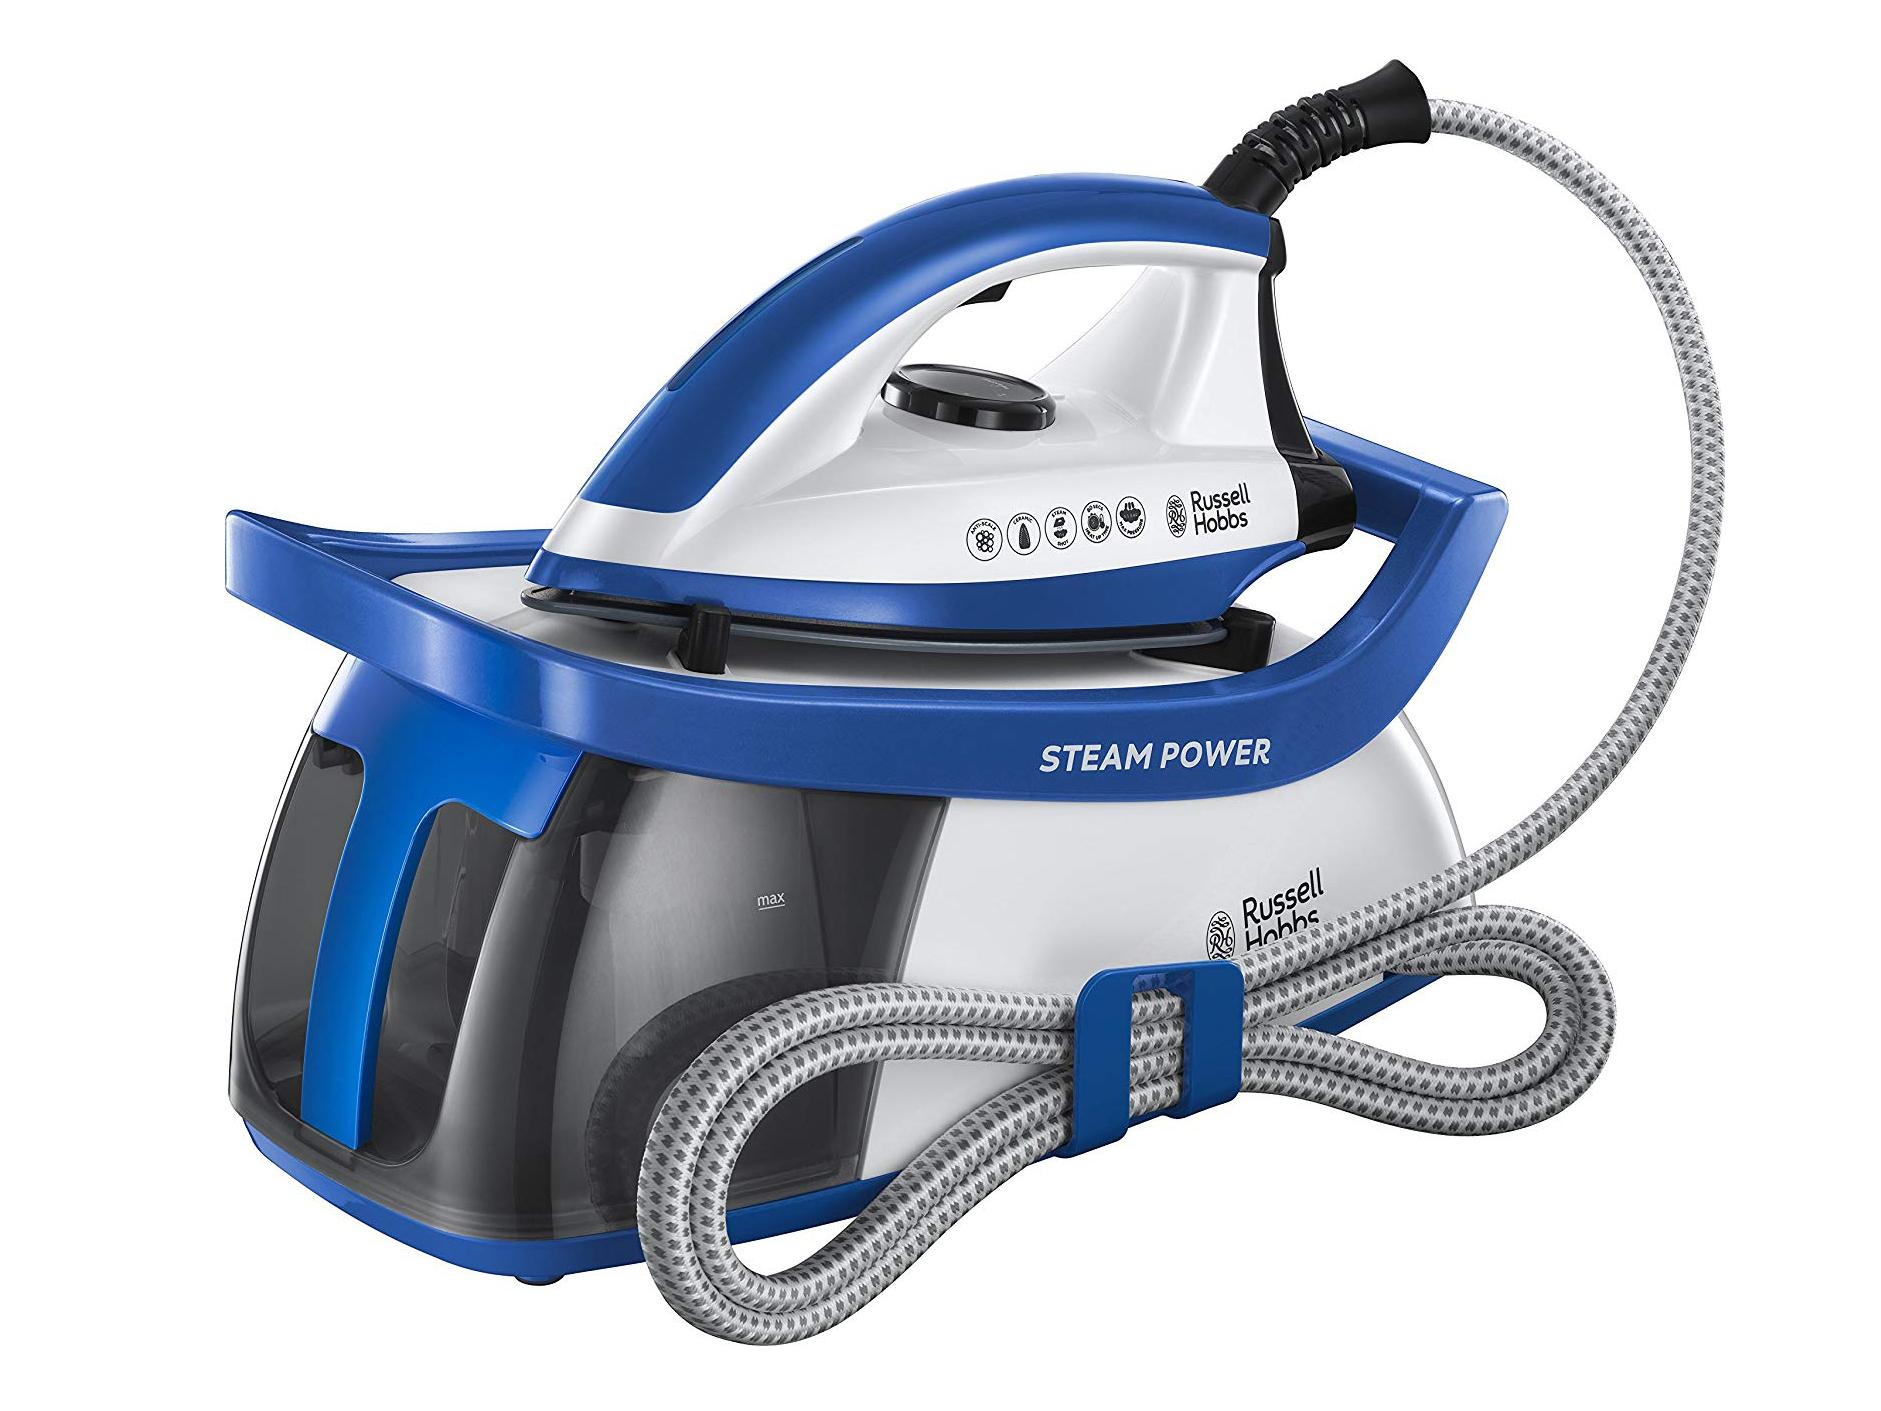 9 best steam generator irons | The Independent